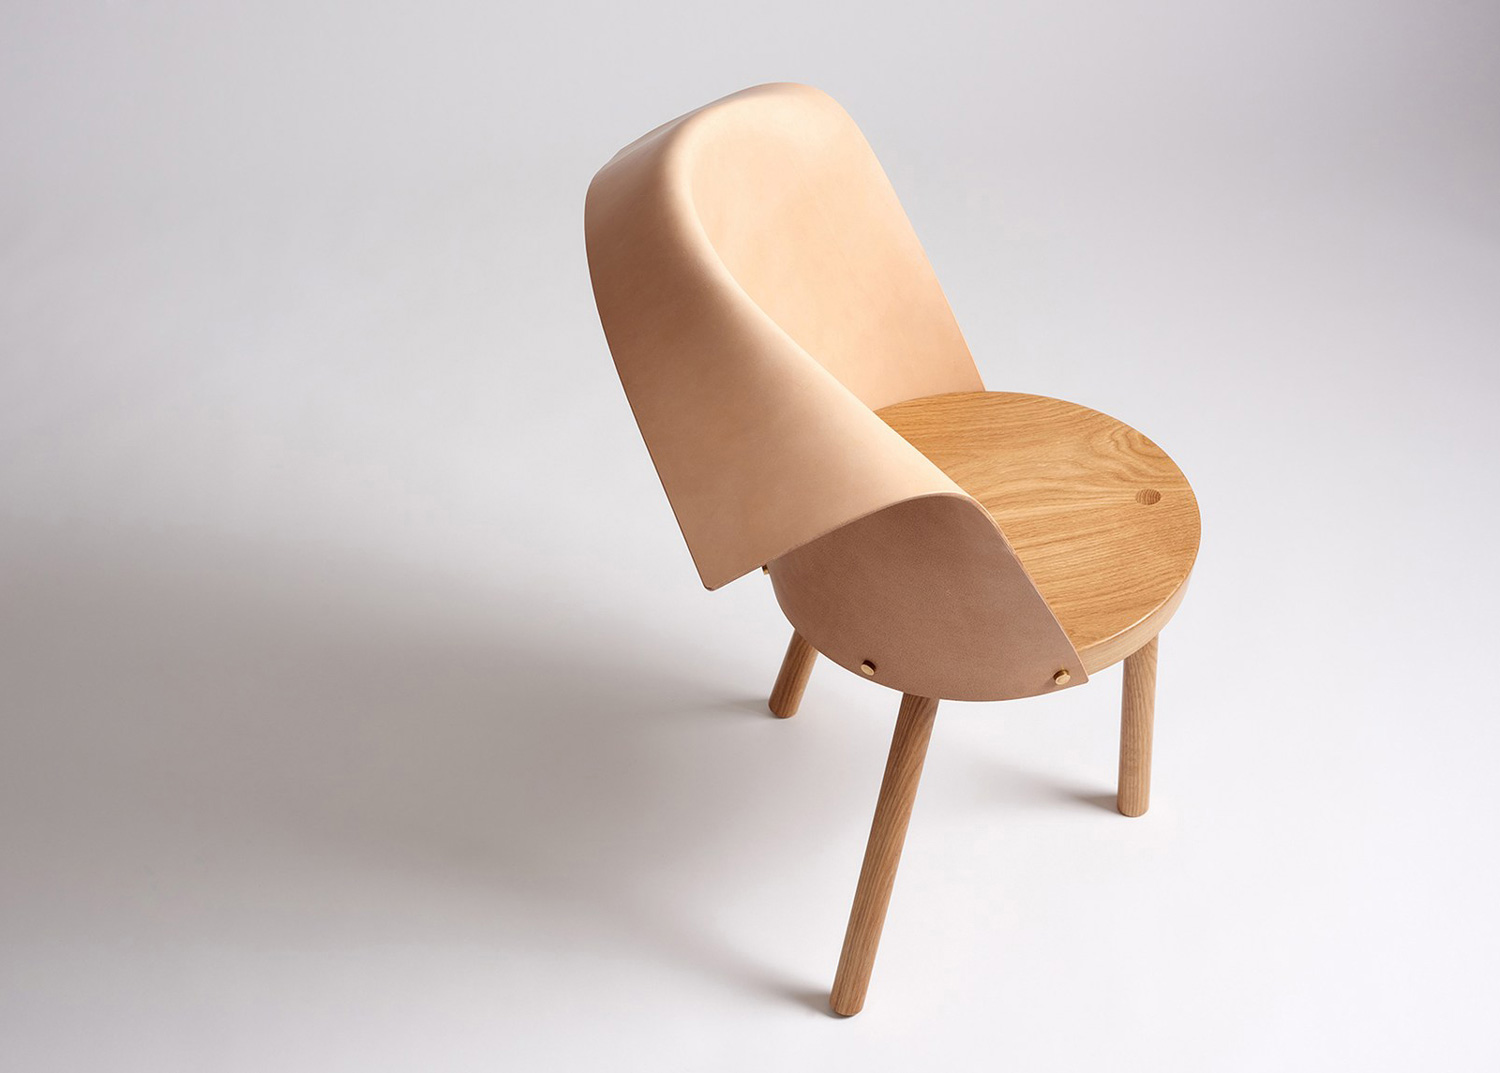 Clop Chair by TORU at Stockholm Furniture Fair 2017 | Yellowtrace